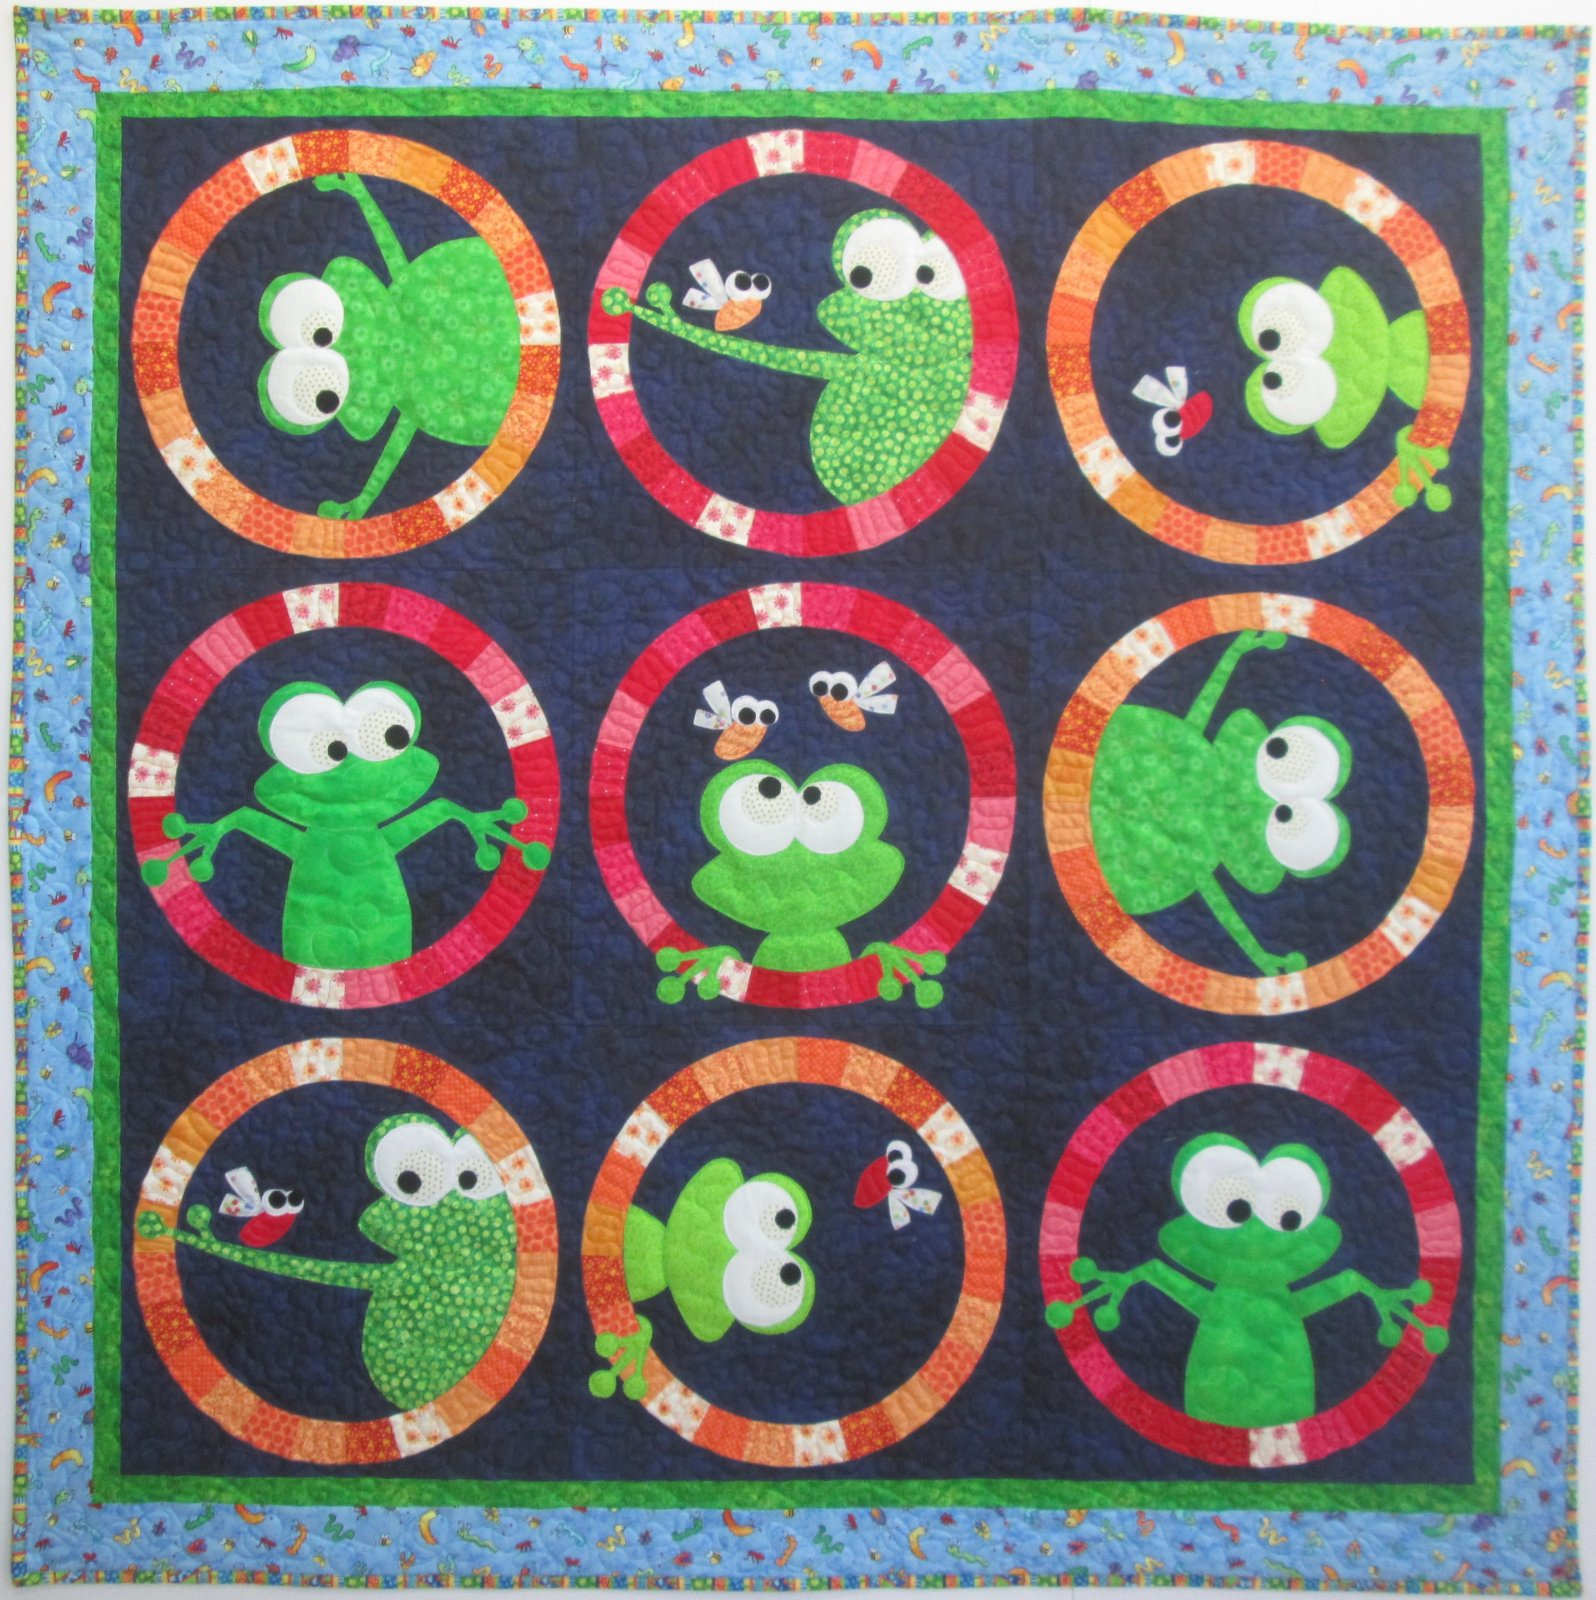 Frog Face Quilt Sample 60 x 60